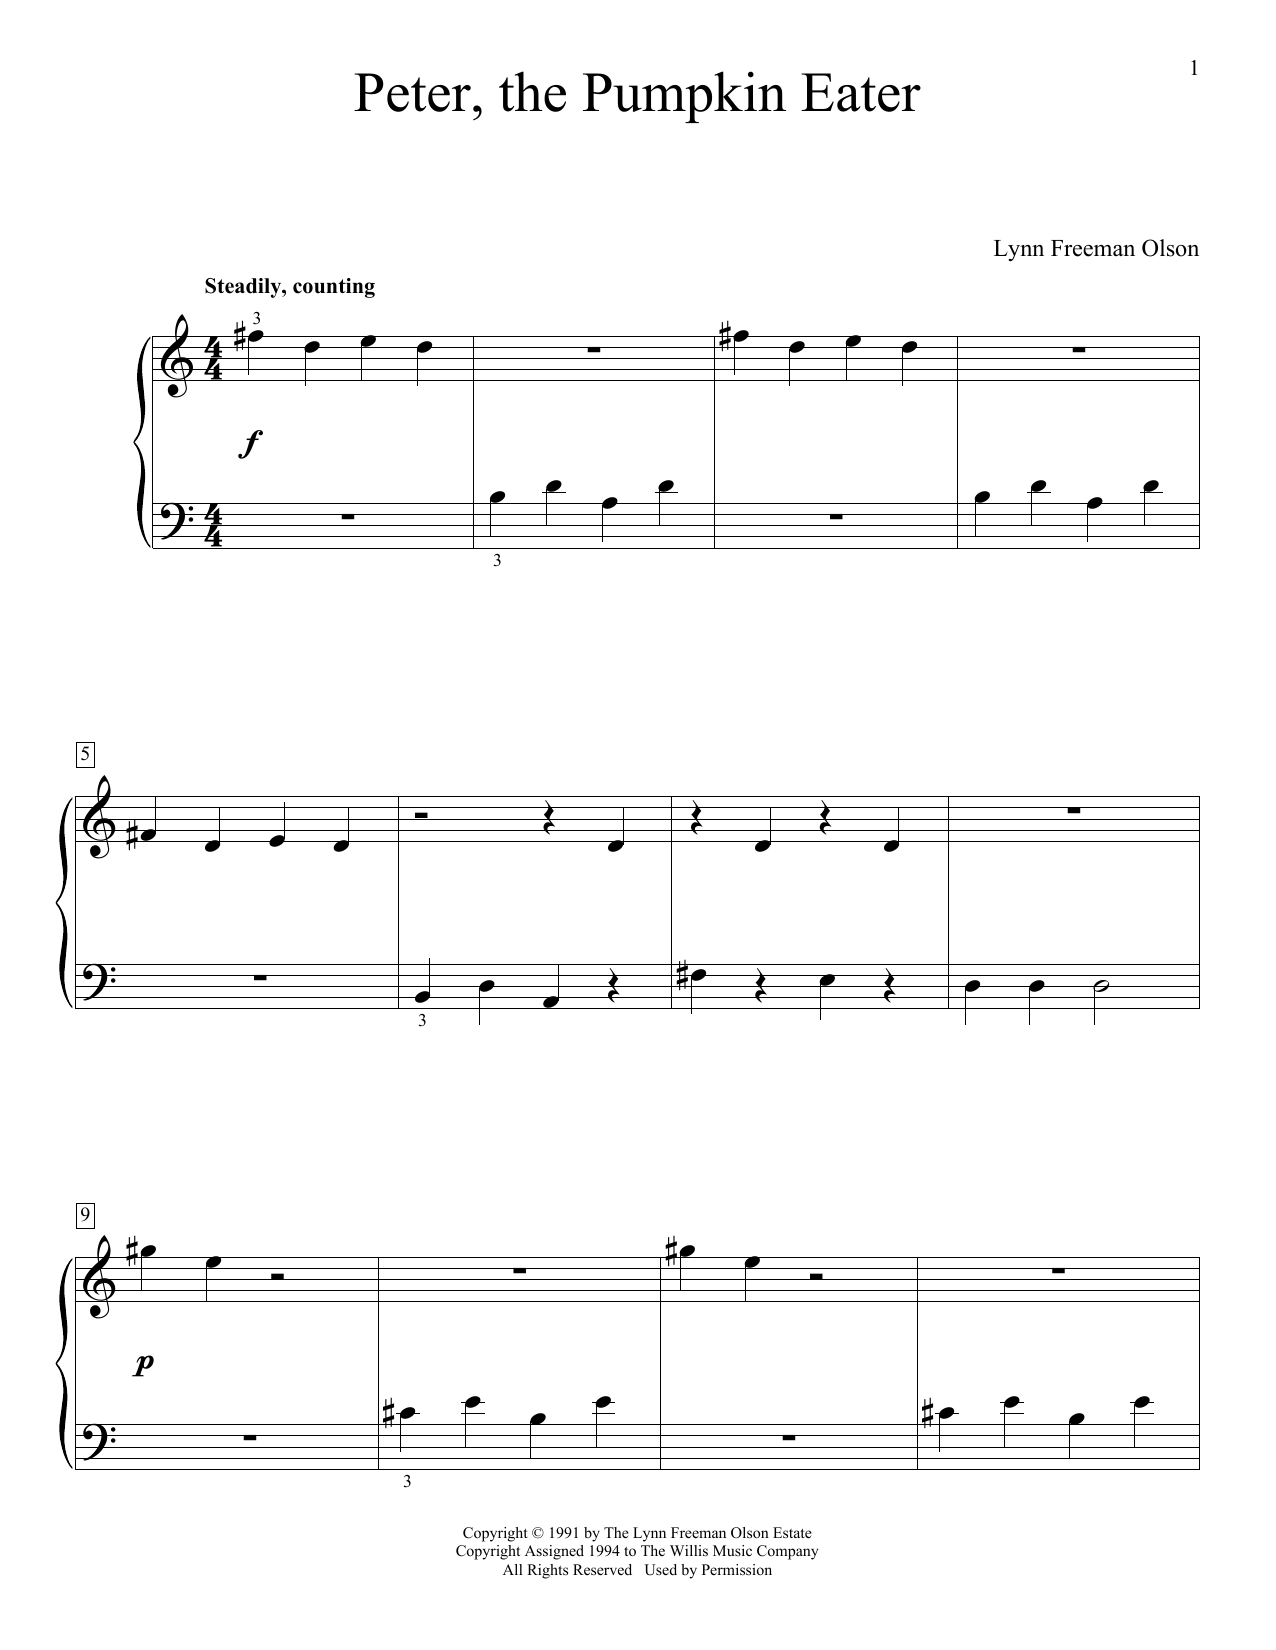 Lynn Freeman Olson Peter, The Pumpkin Eater sheet music notes and chords. Download Printable PDF.